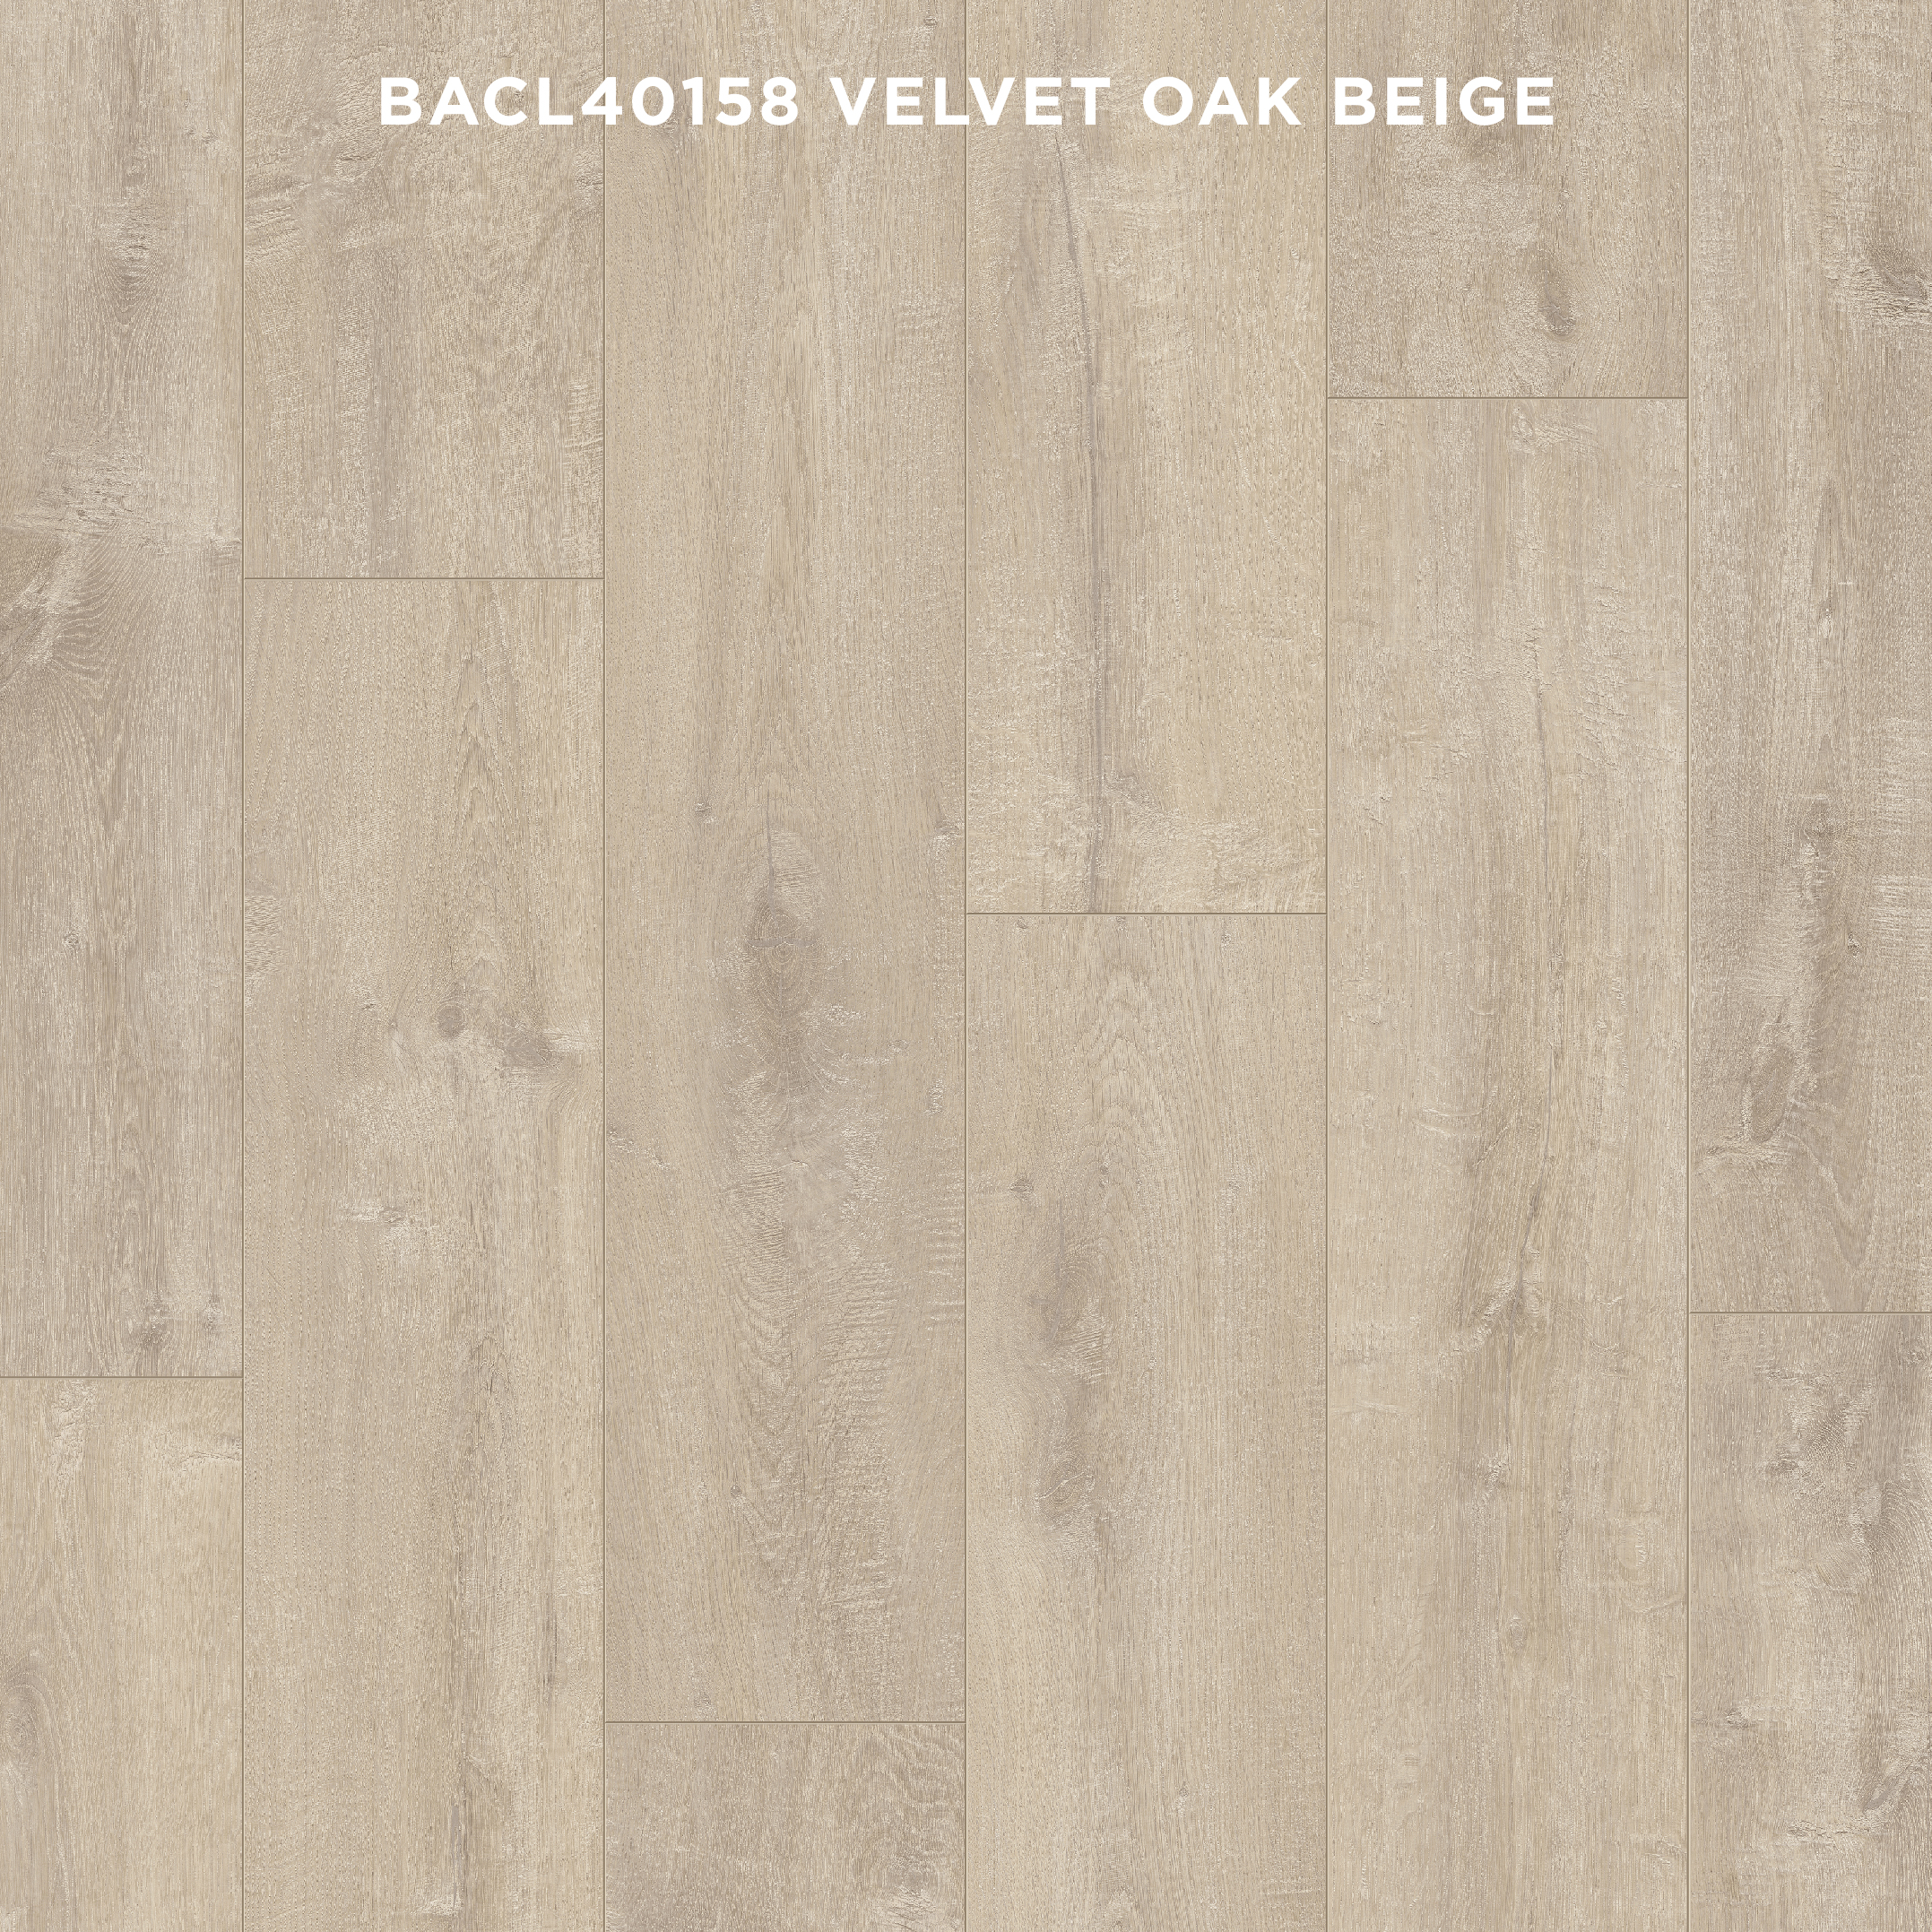 BACL40158 VELVET OAK BEIGE (New)